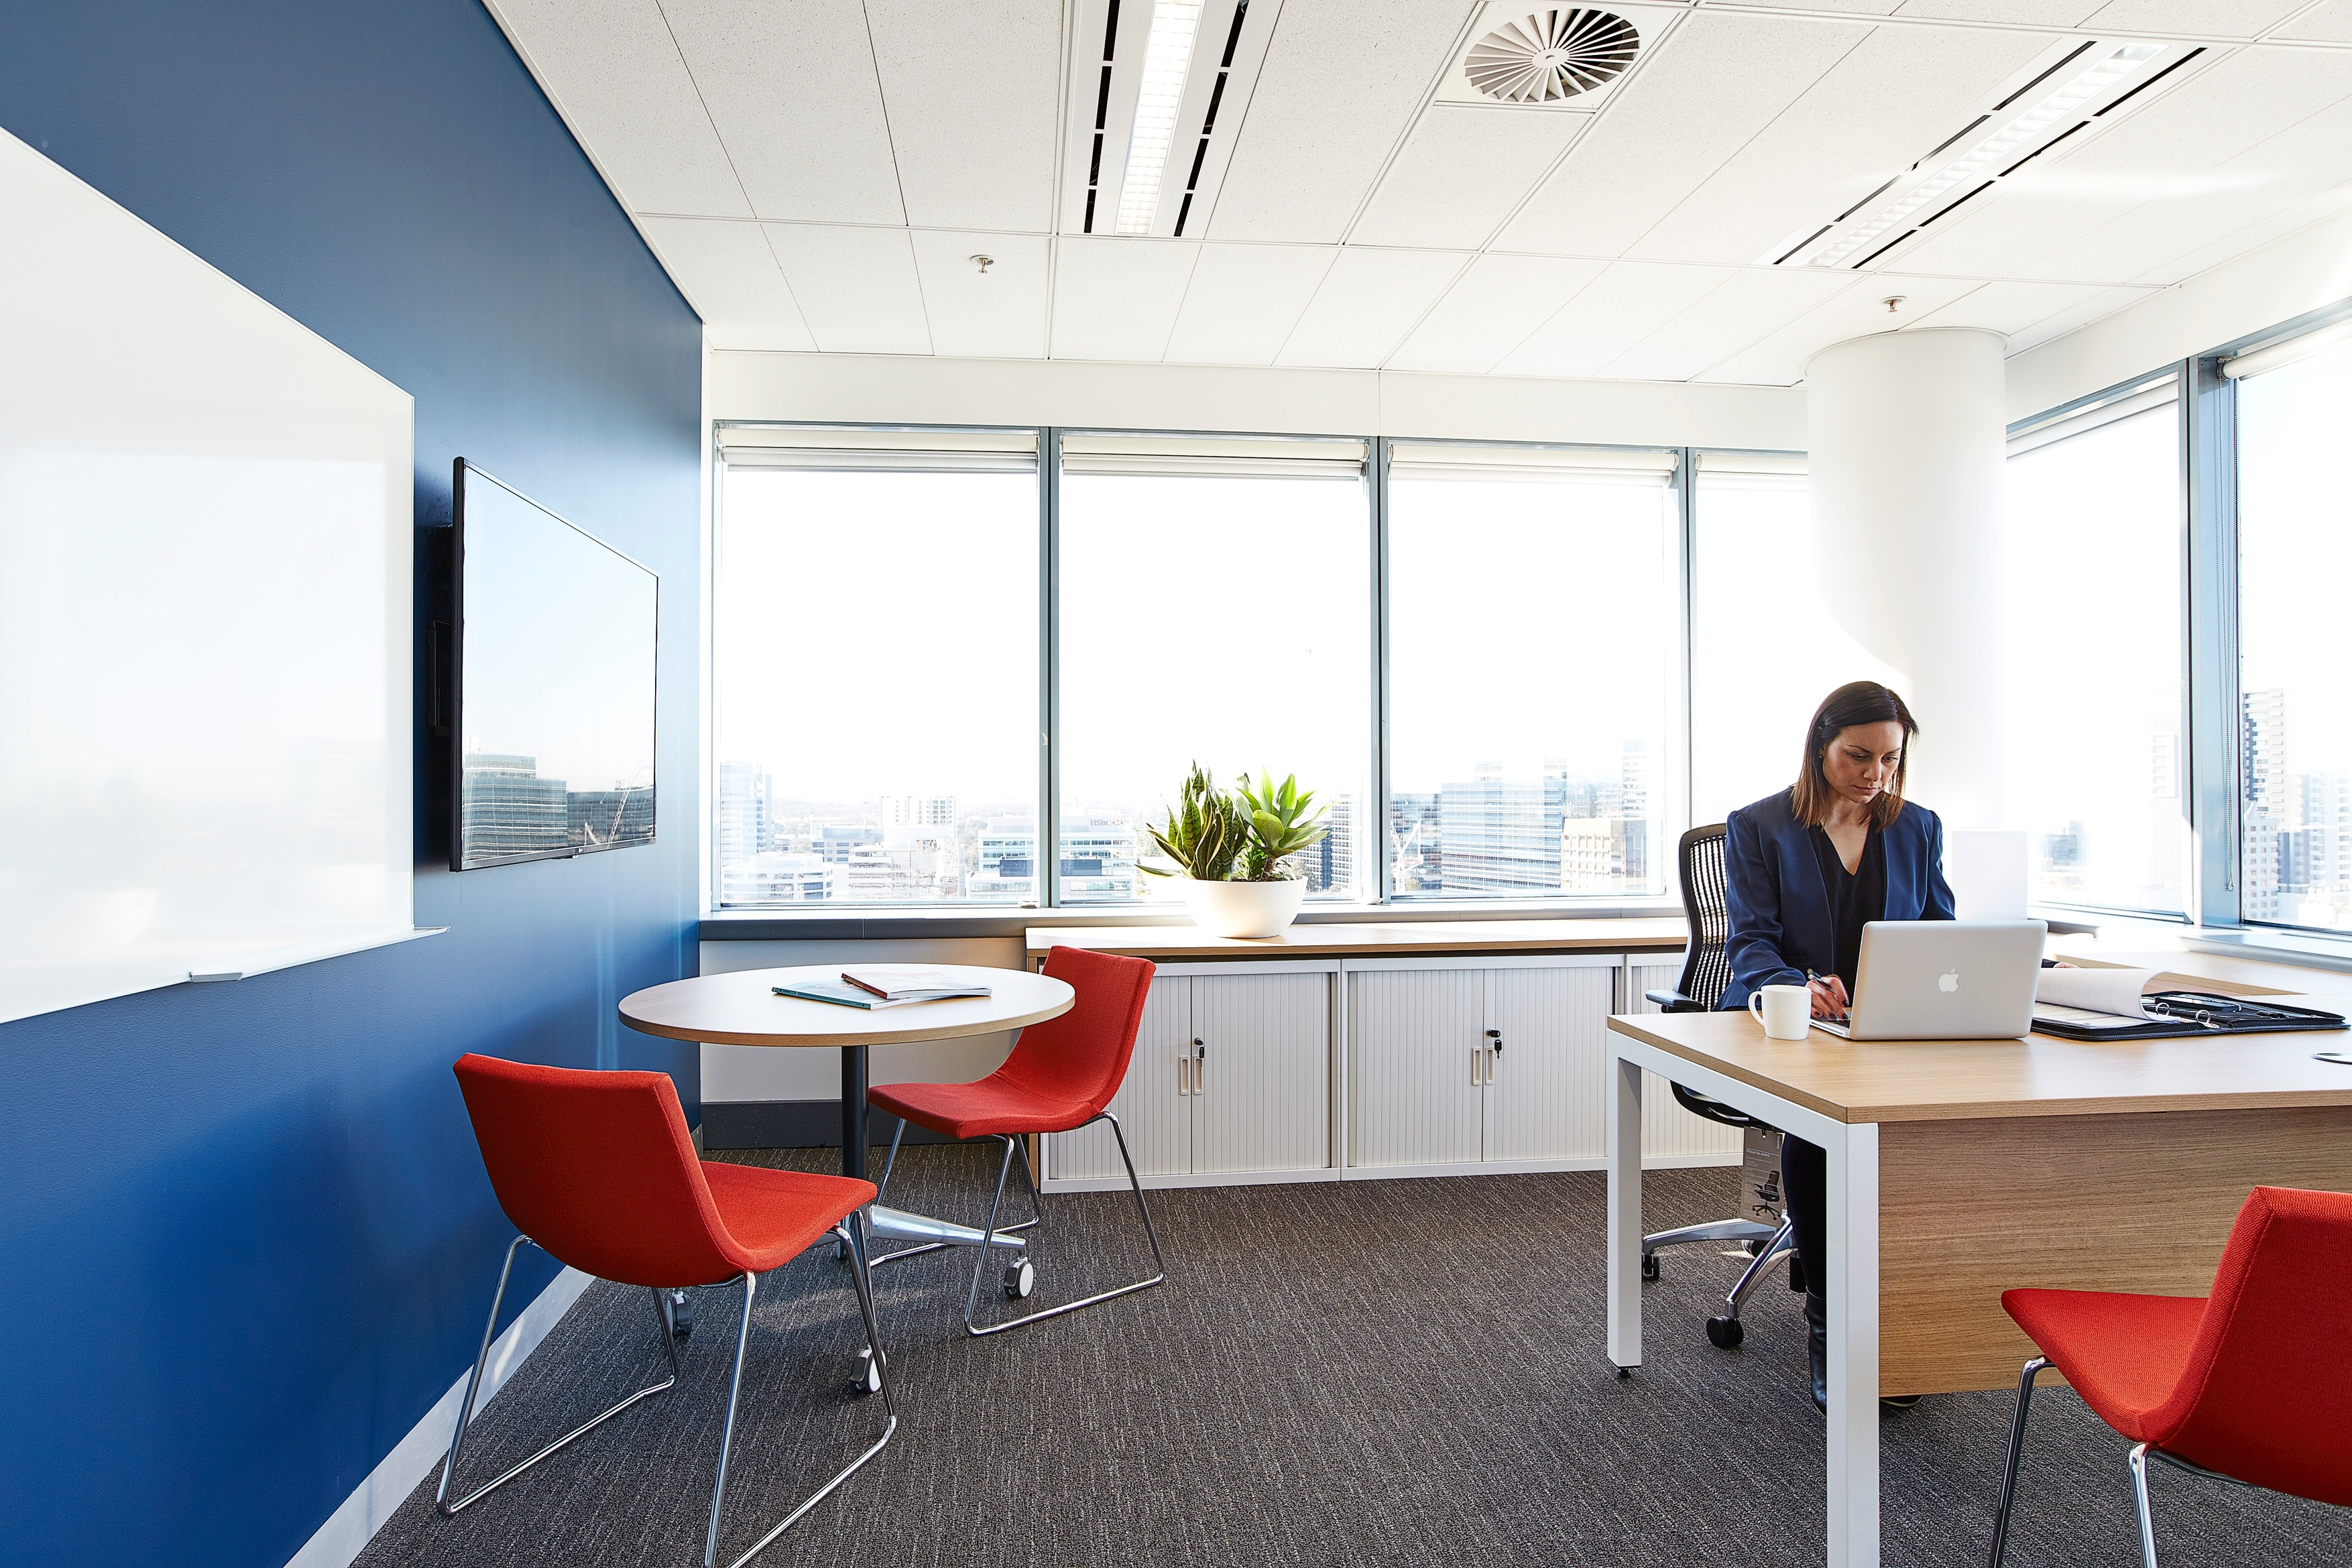 Hanson Parramatta Fitout Tenant Representation, Interior Design, Project & Construction Management Project Image 6 by PCG